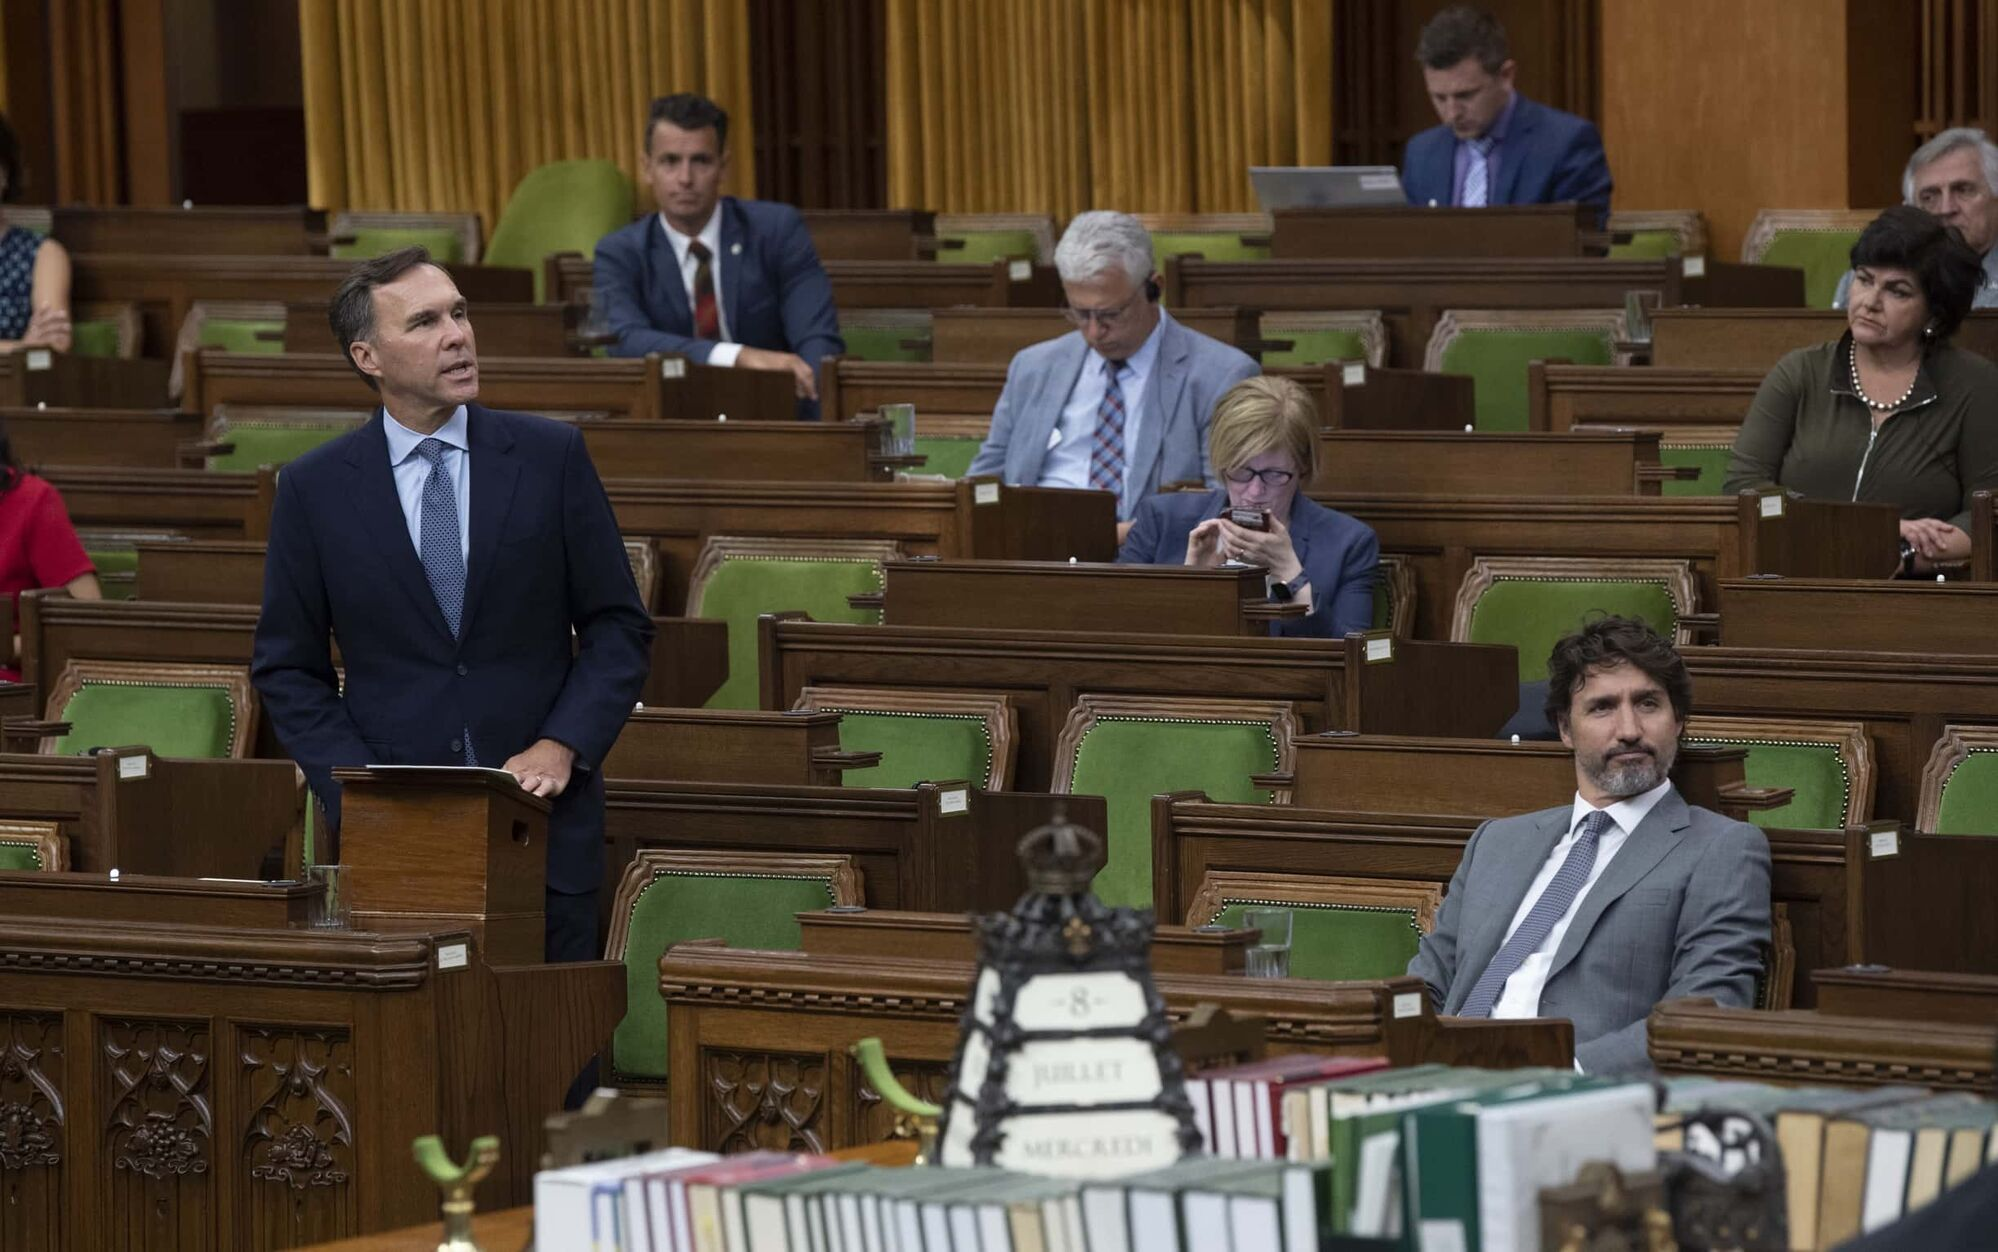 Both Finance Minster Bill Morneau (left) and Prime Minister Justin Trudeau (right) have shown a level of ethical unmooring and personal entitlement that brings their fitness for office into question. (Adrian Wyld / The Canadian Press files)